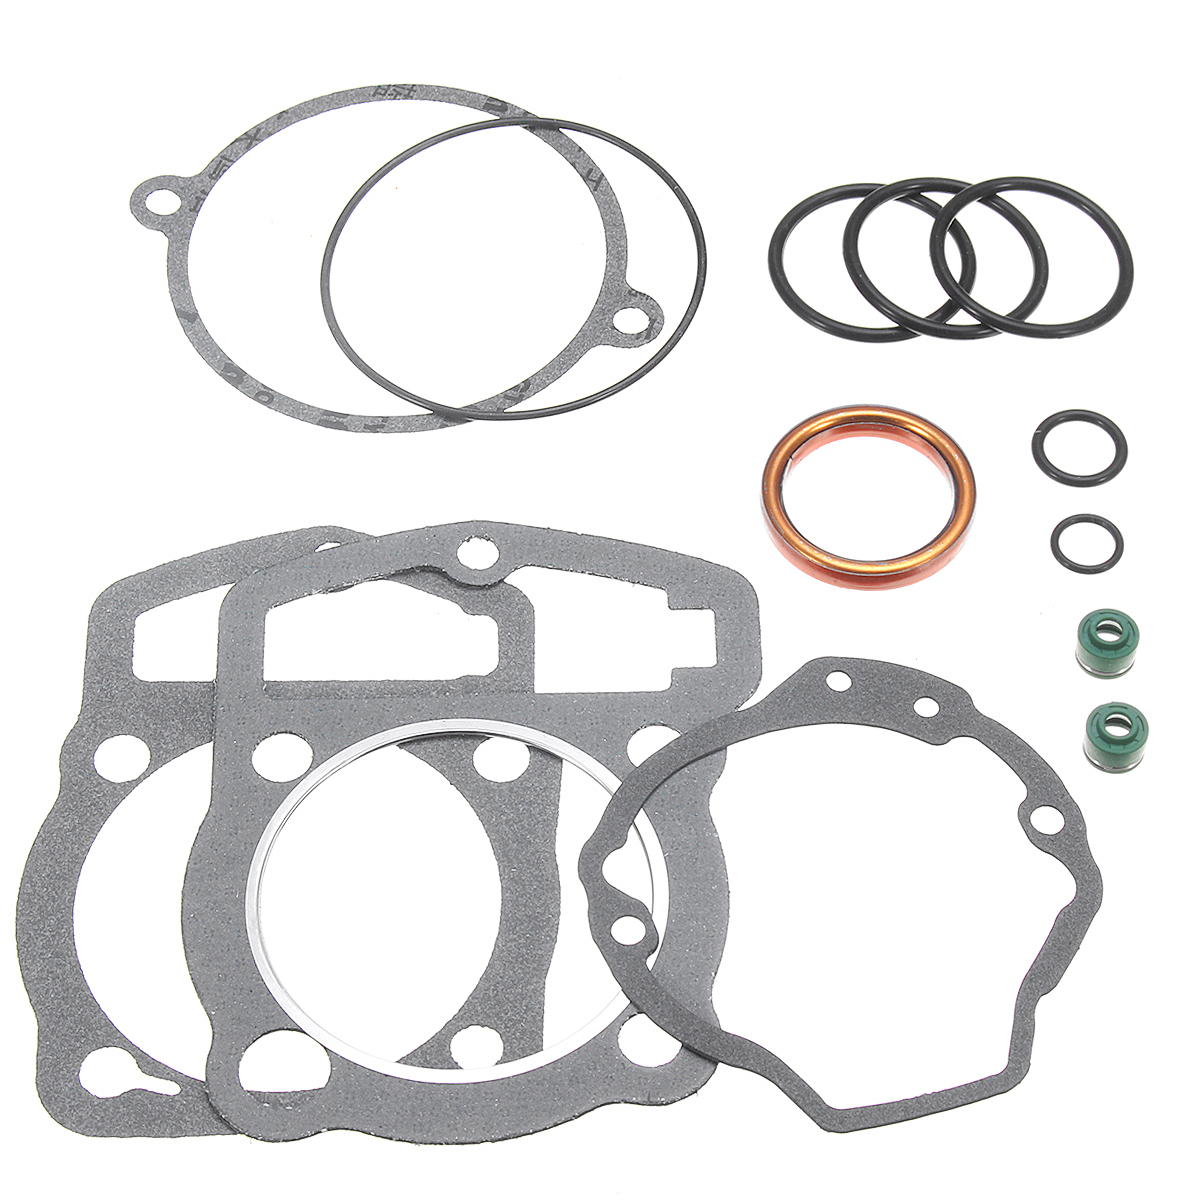 Top End Head Gasket Kit For Honda CRF230F 2003-2017 1032020175